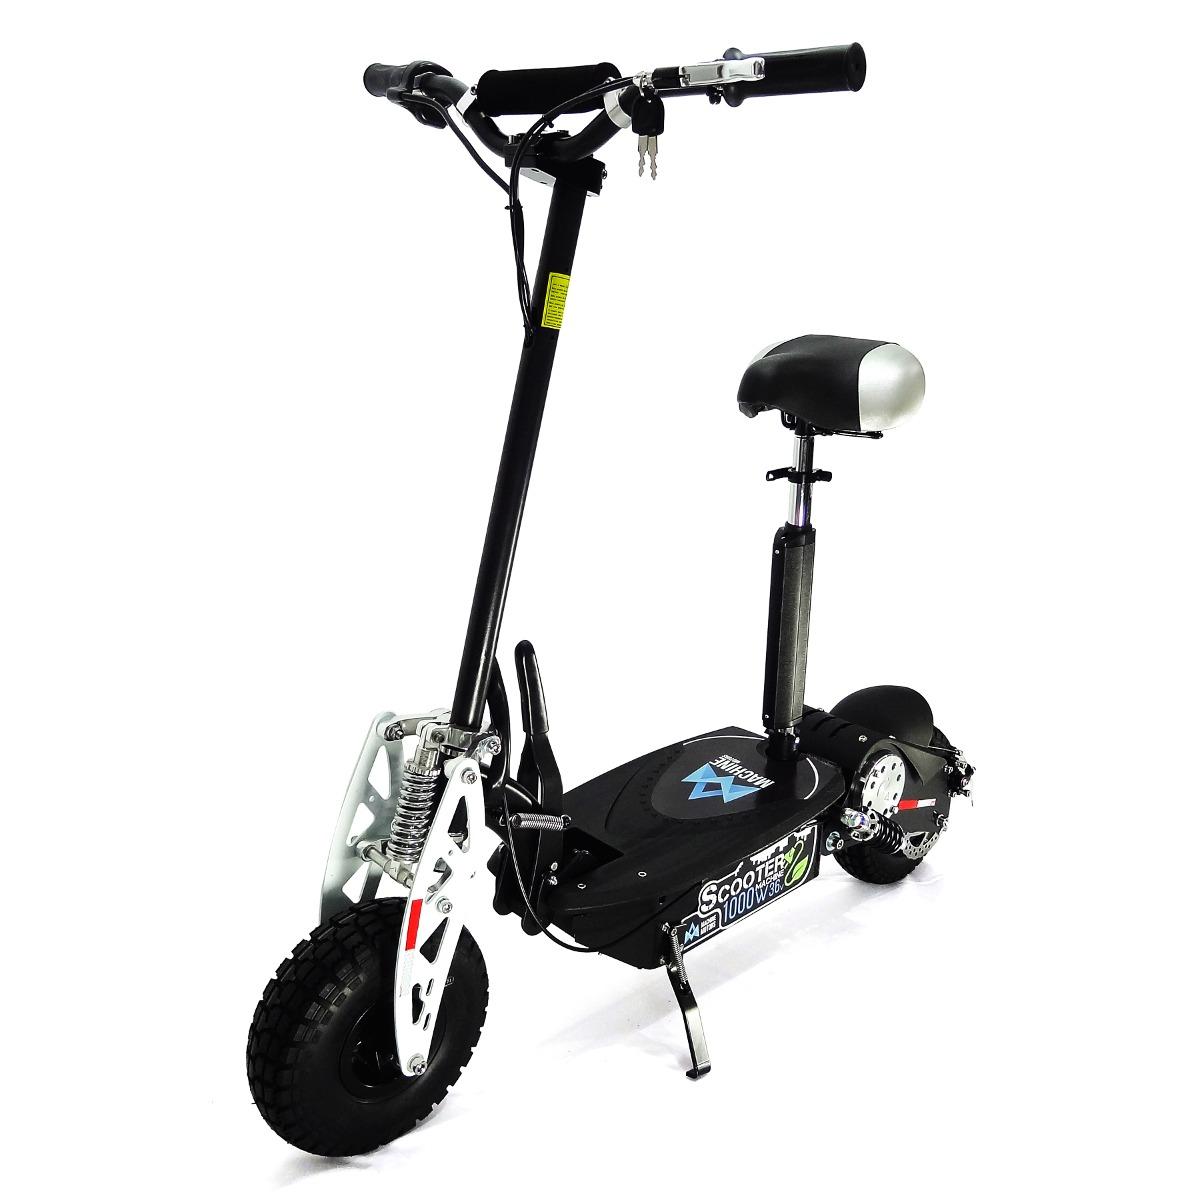 9b86ab69665 Scooter Elétrico Patinete Machine Motors 1000w 36v Preto - R  3.390 ...